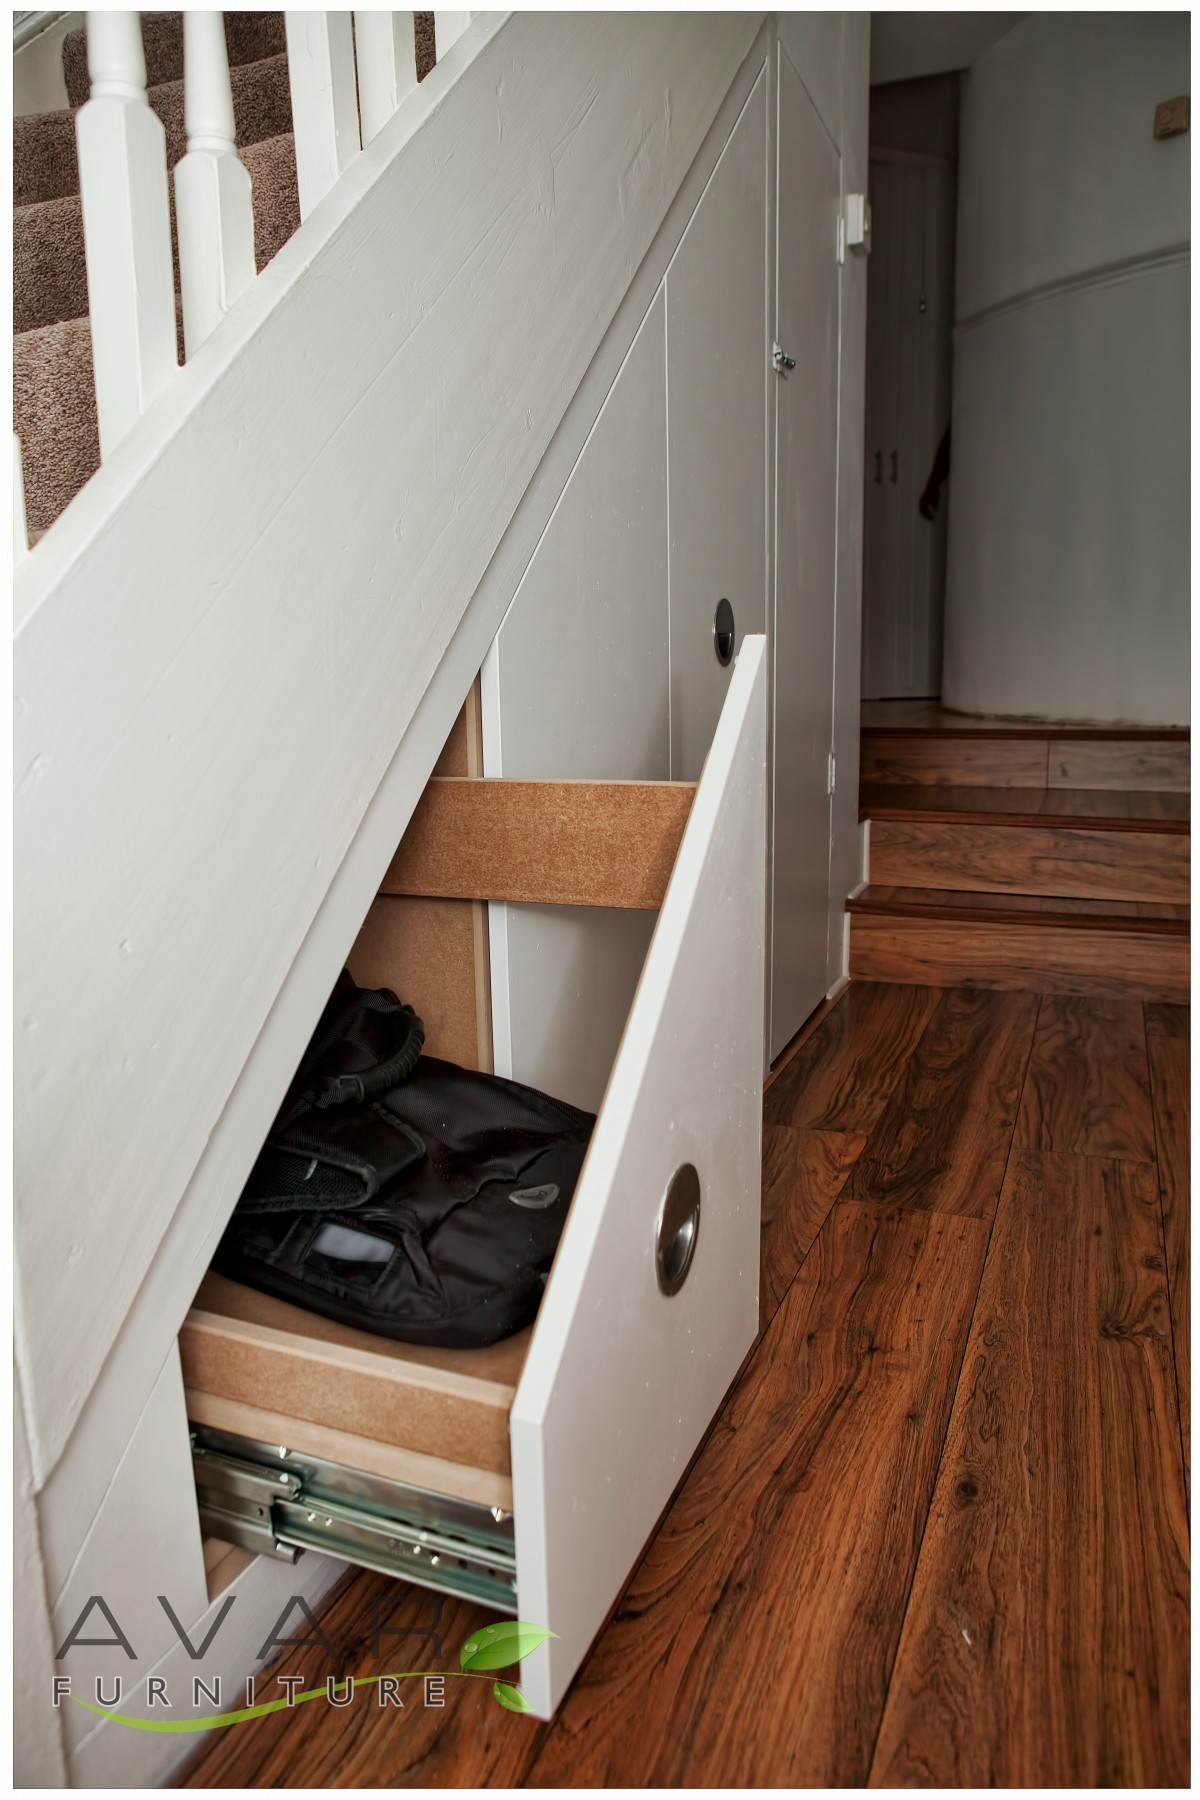 ƸӜƷ Under Stairs Storage Ideas Gallery 16 North London